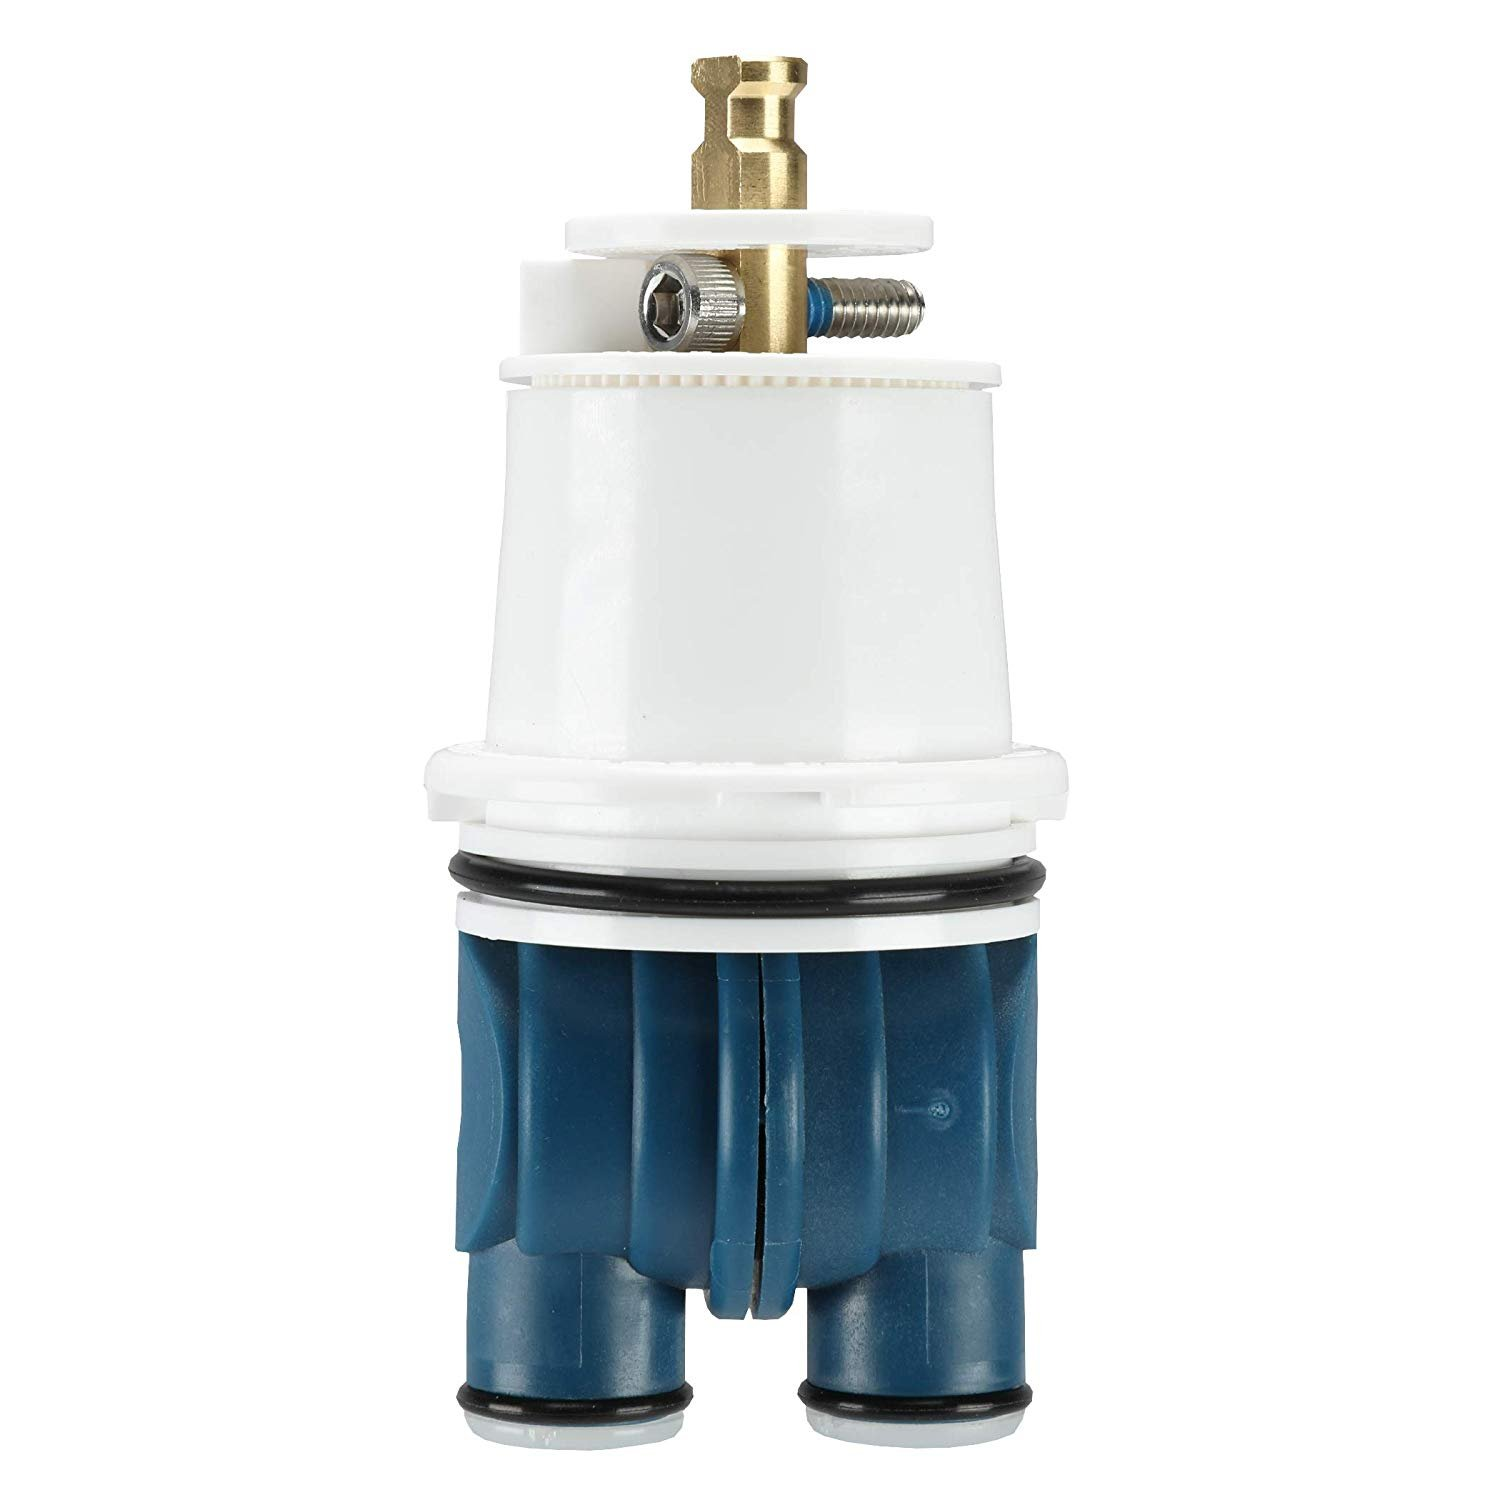 danco replacement cartridge for delta monitor single handle tub shower faucets delta monitor shower valve cartridge parts rp19804 10347